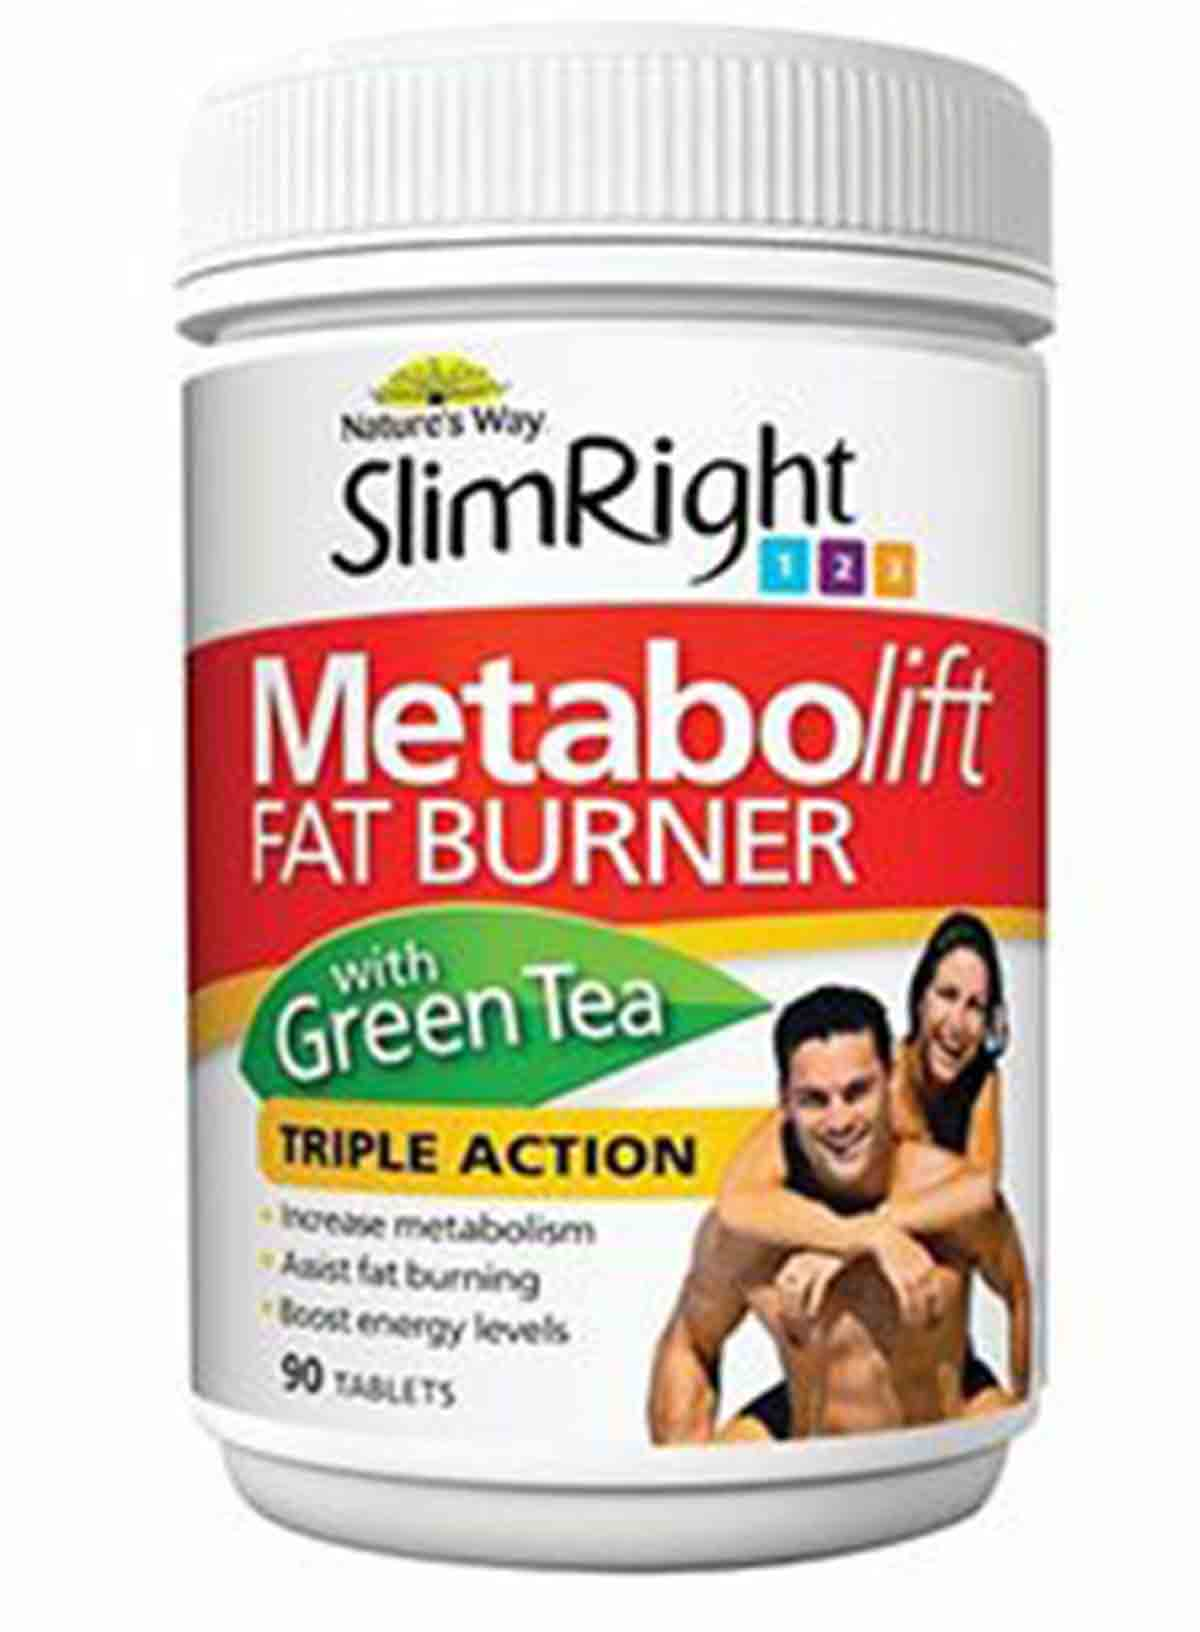 Metabolift Fat Burner